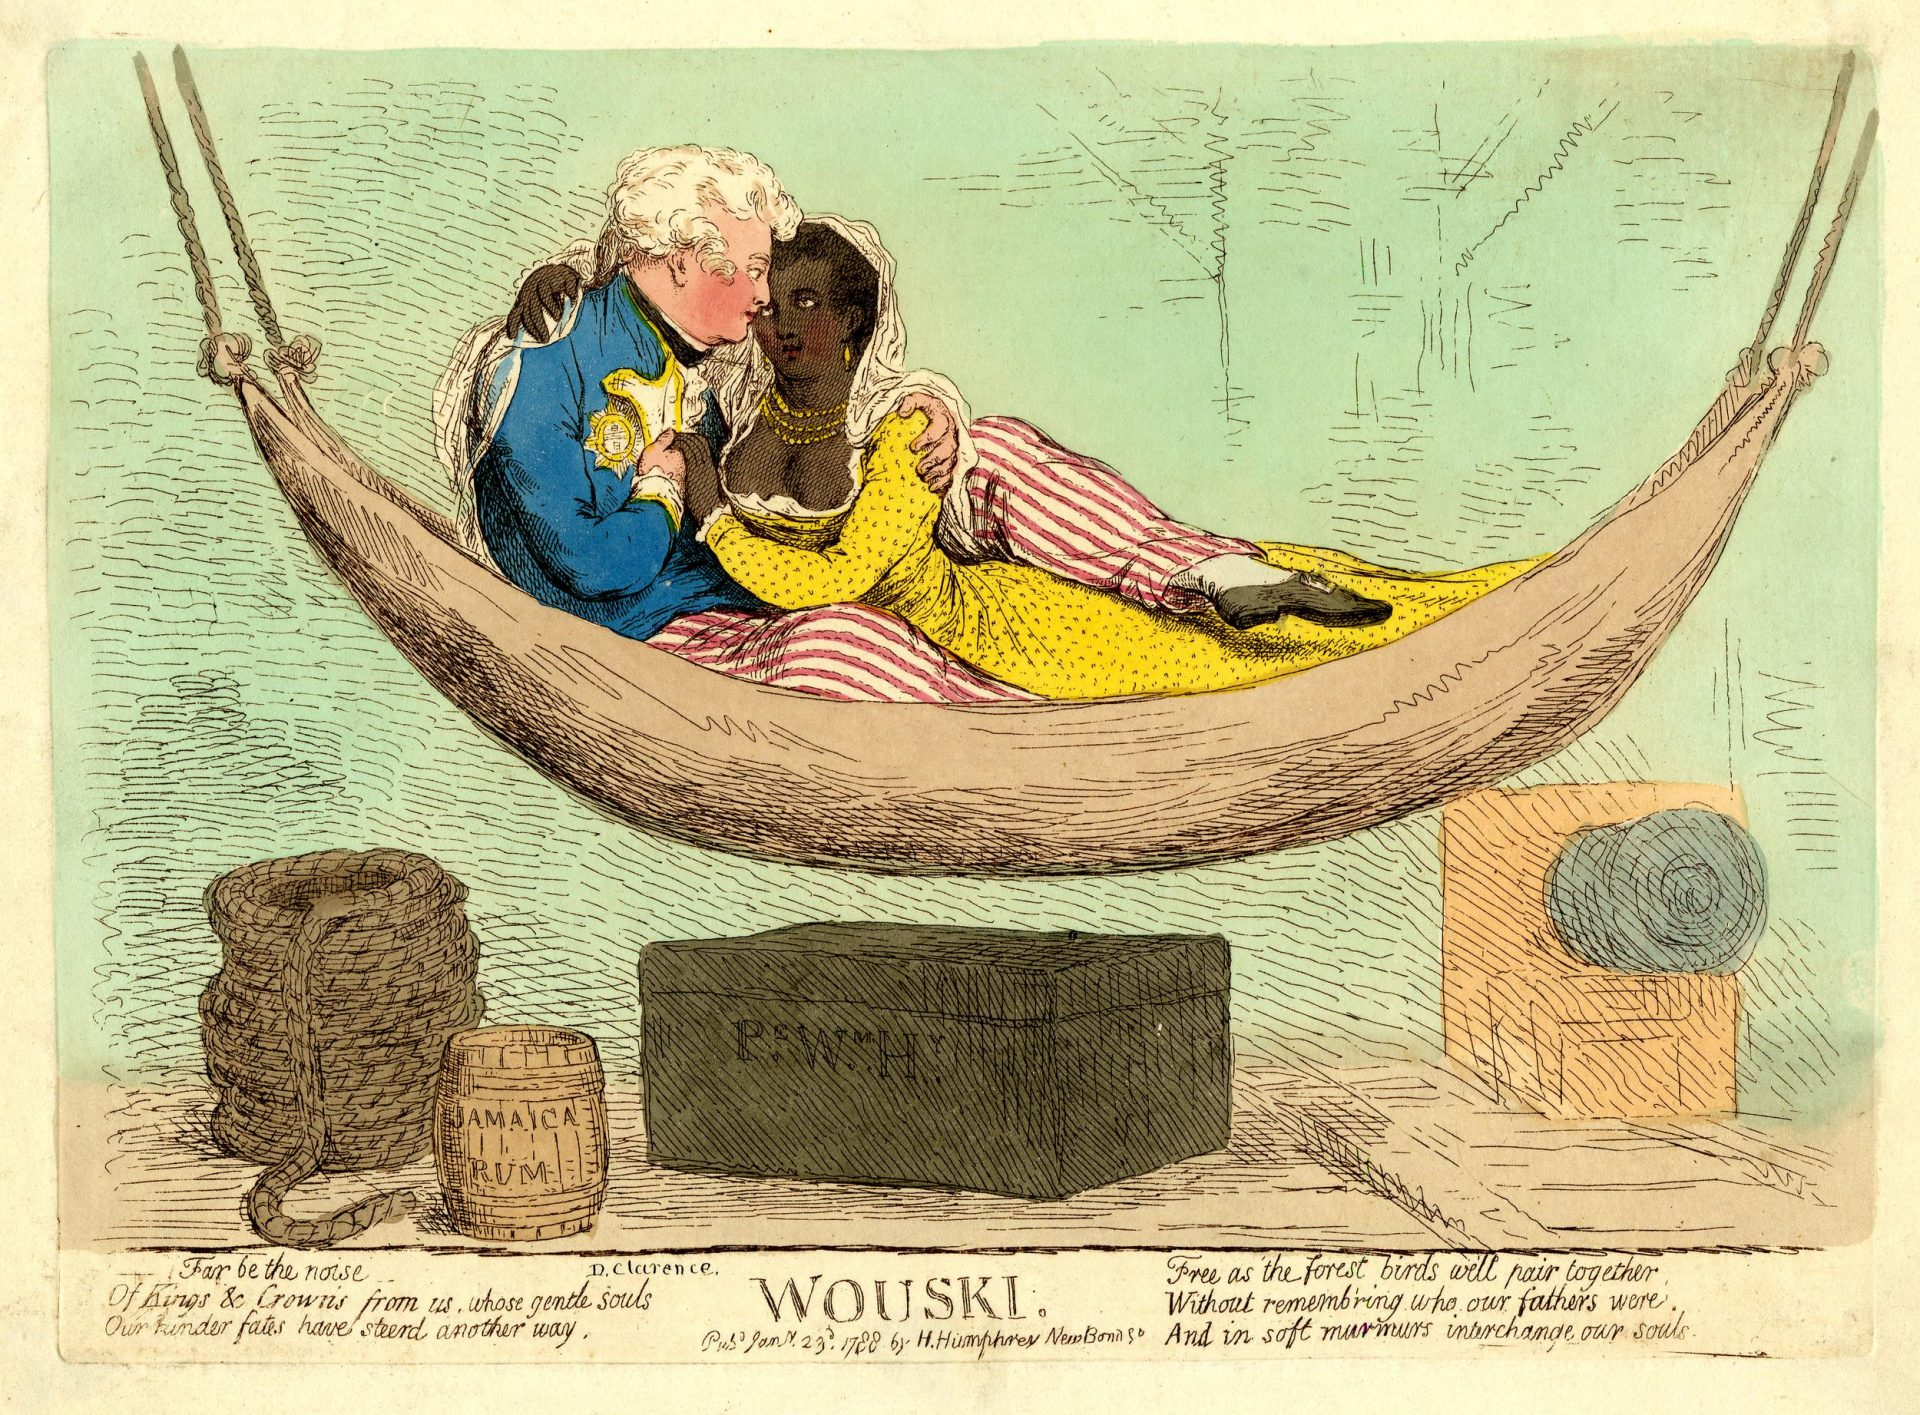 Hand colored etching of King William IV and a Black woman by British caricaturist James Gillray. Photo Credit: © National Portrait Gallery, London.